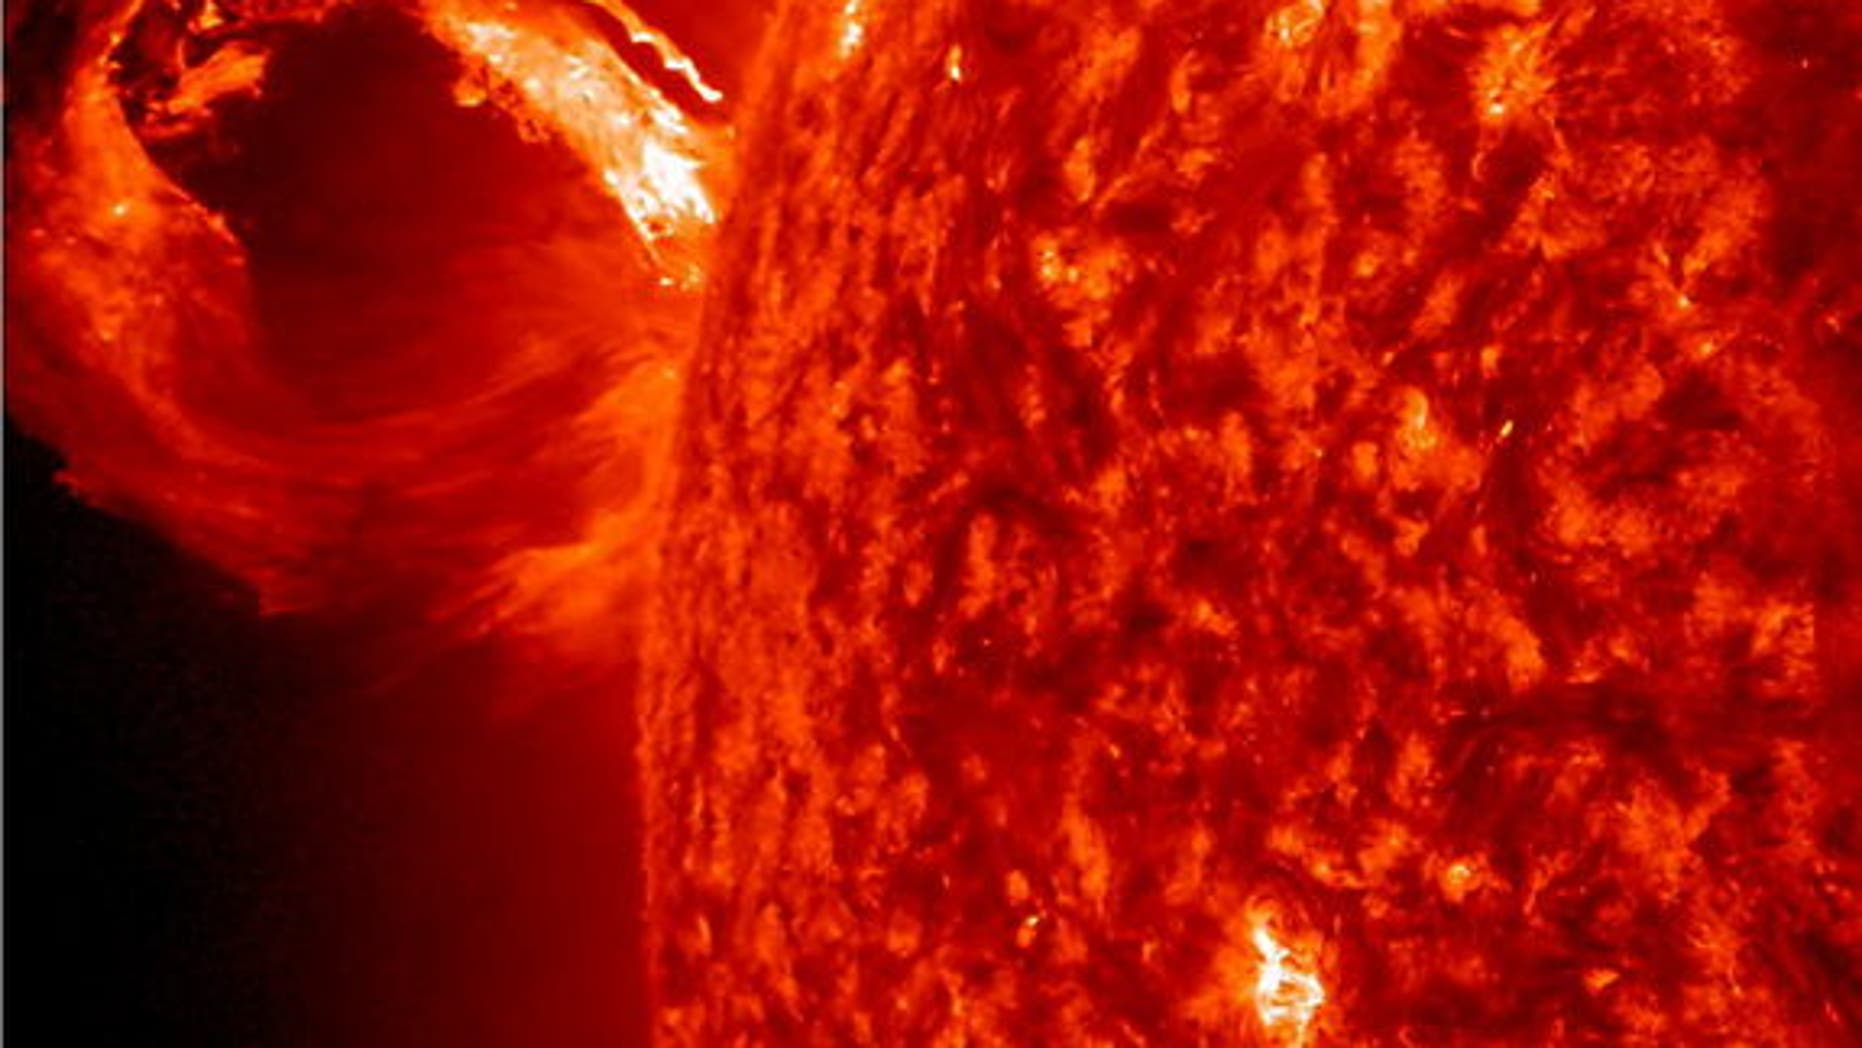 A coronal mass ejection (CME) erupted from just around the edge of the sun on May 1, 2013, in a gigantic rolling wave. CMEs can shoot over a billion tons of particles into space at over a million miles per hour. This CME occurred on the sun's l